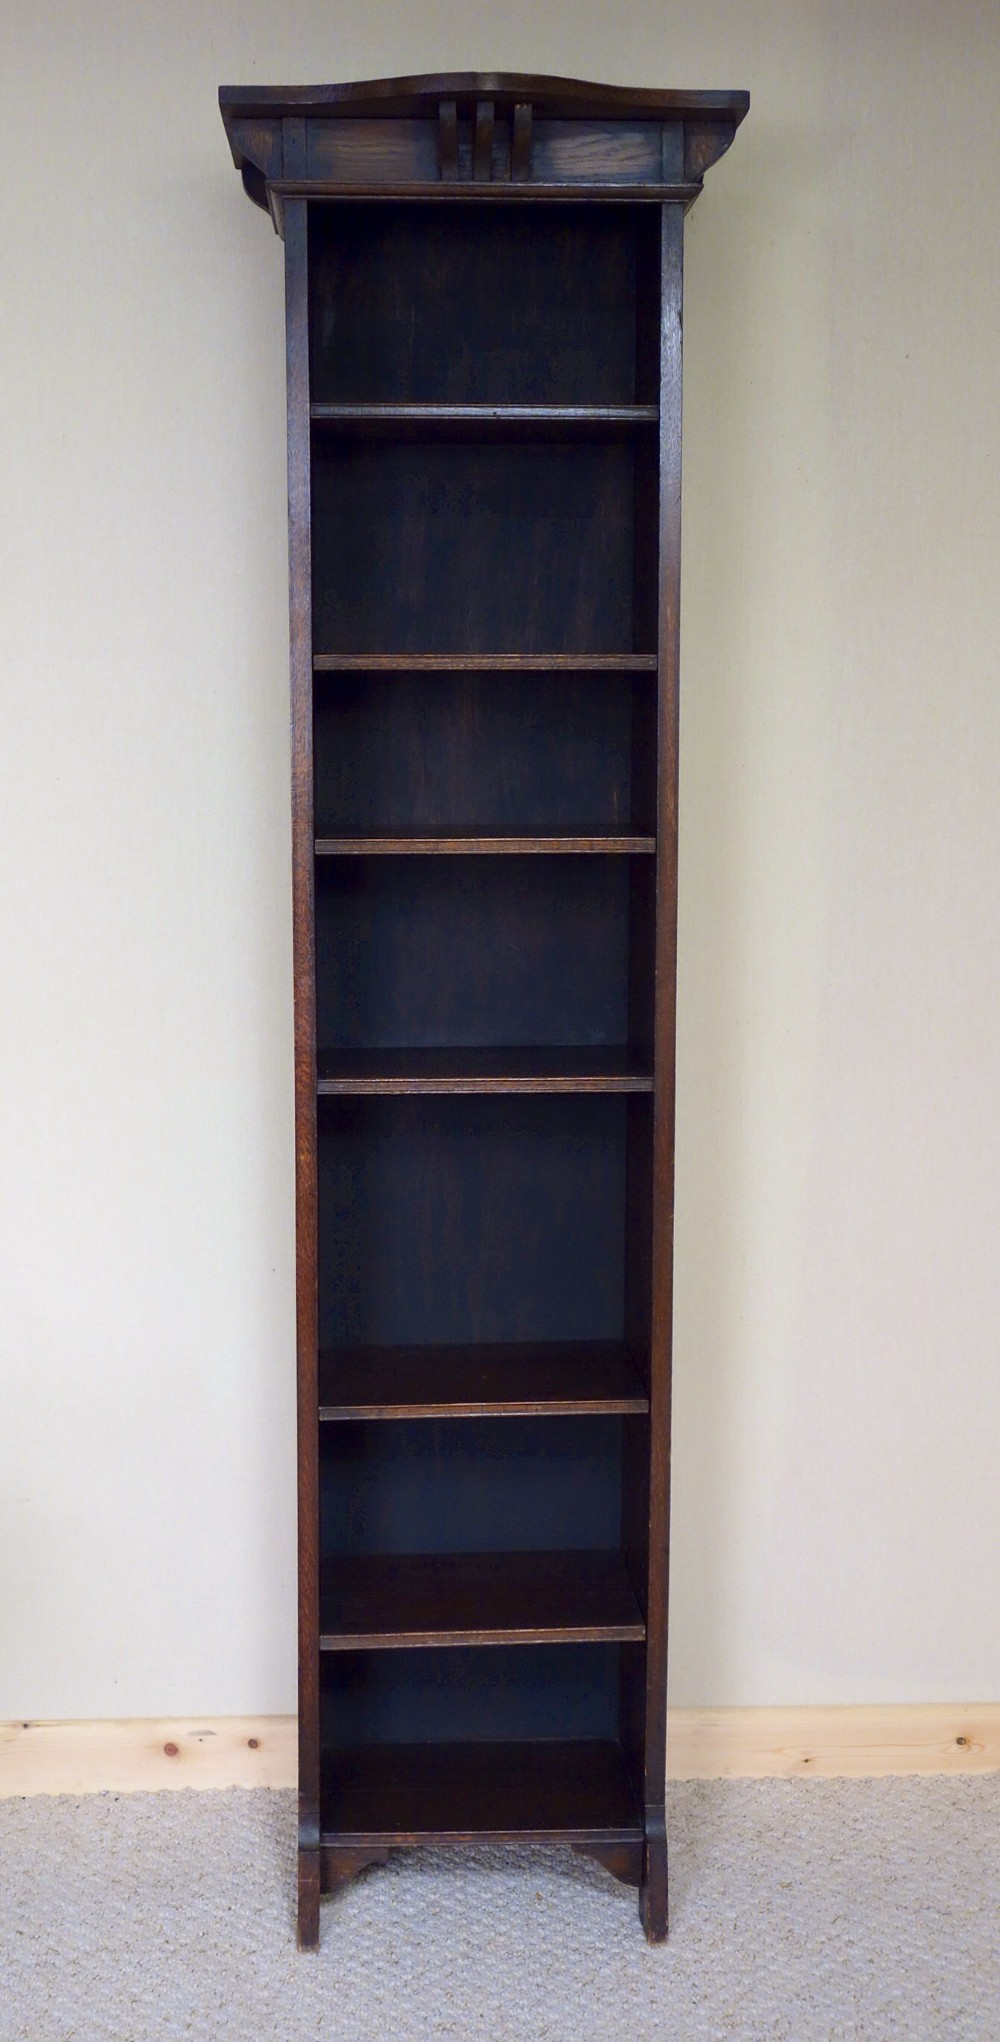 6ft Tall Narrow Oak Bookcase Art Nouveau 300340